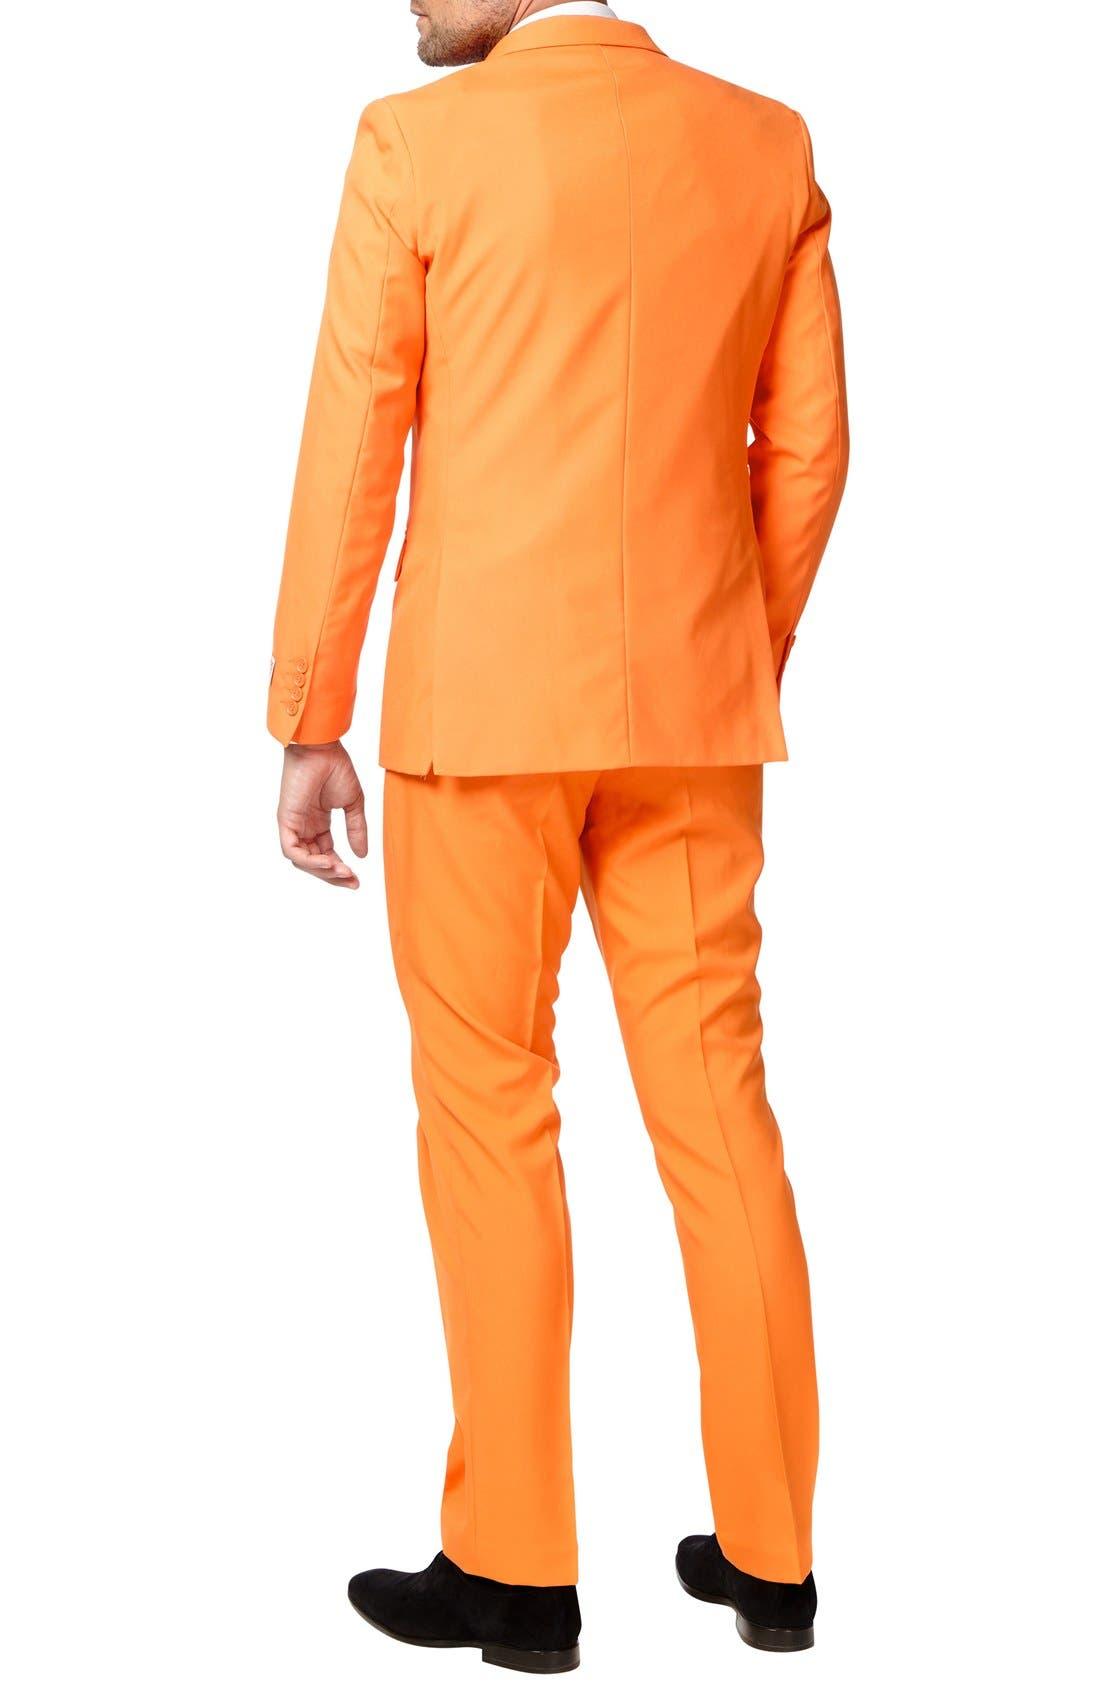 Alternate Image 2  - OppoSuits 'The Orange' Trim Fit Two-Piece Suit with Tie